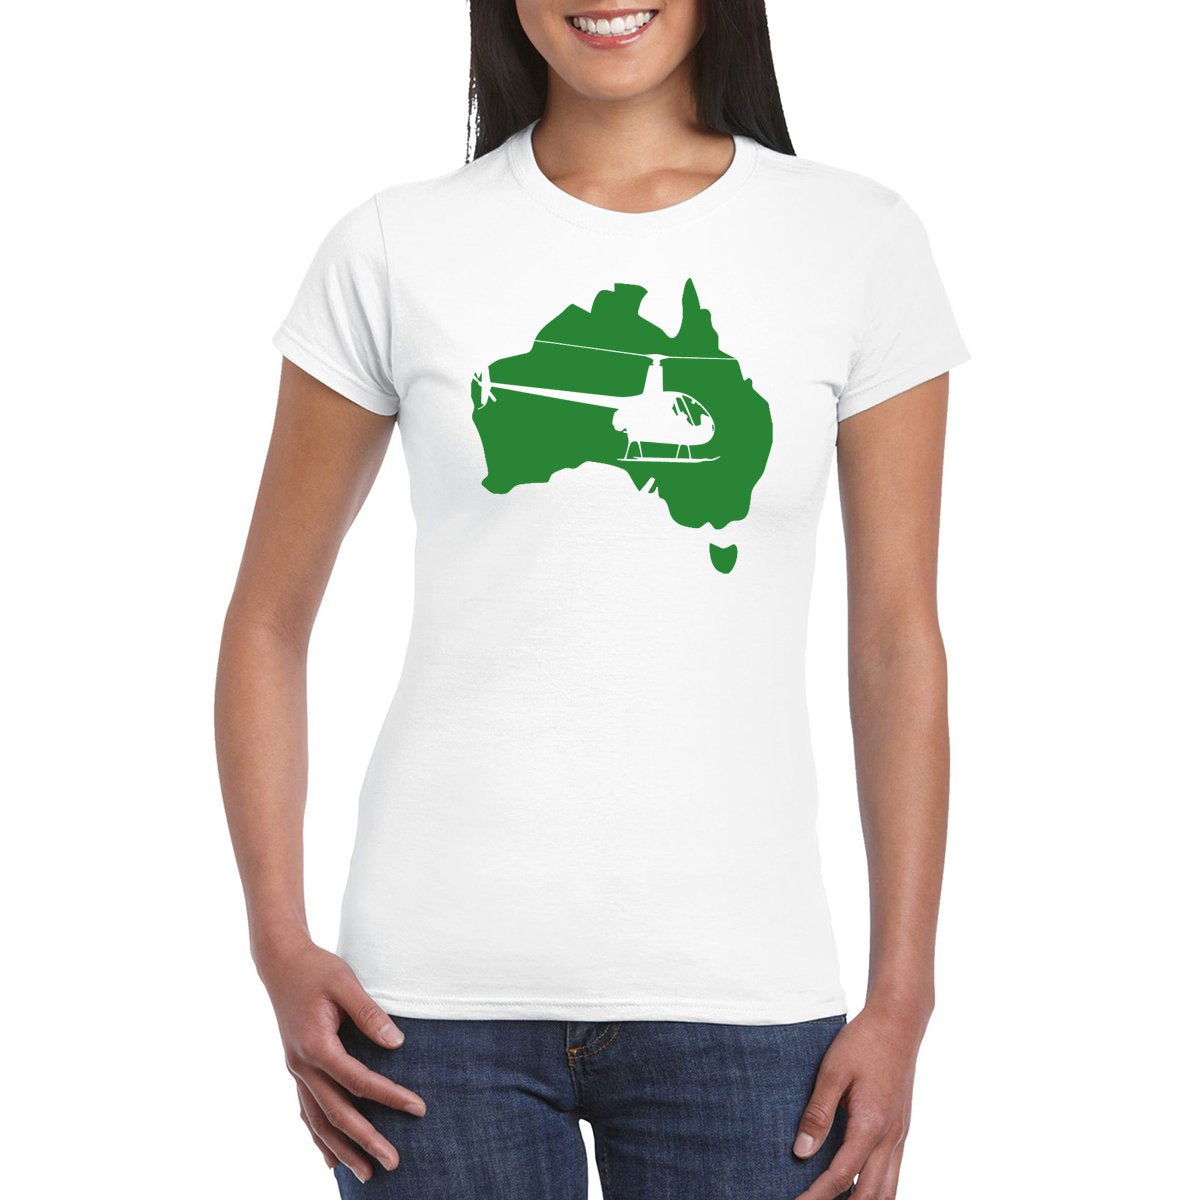 FLY AUS R22 Women's Aviation T-Shirt